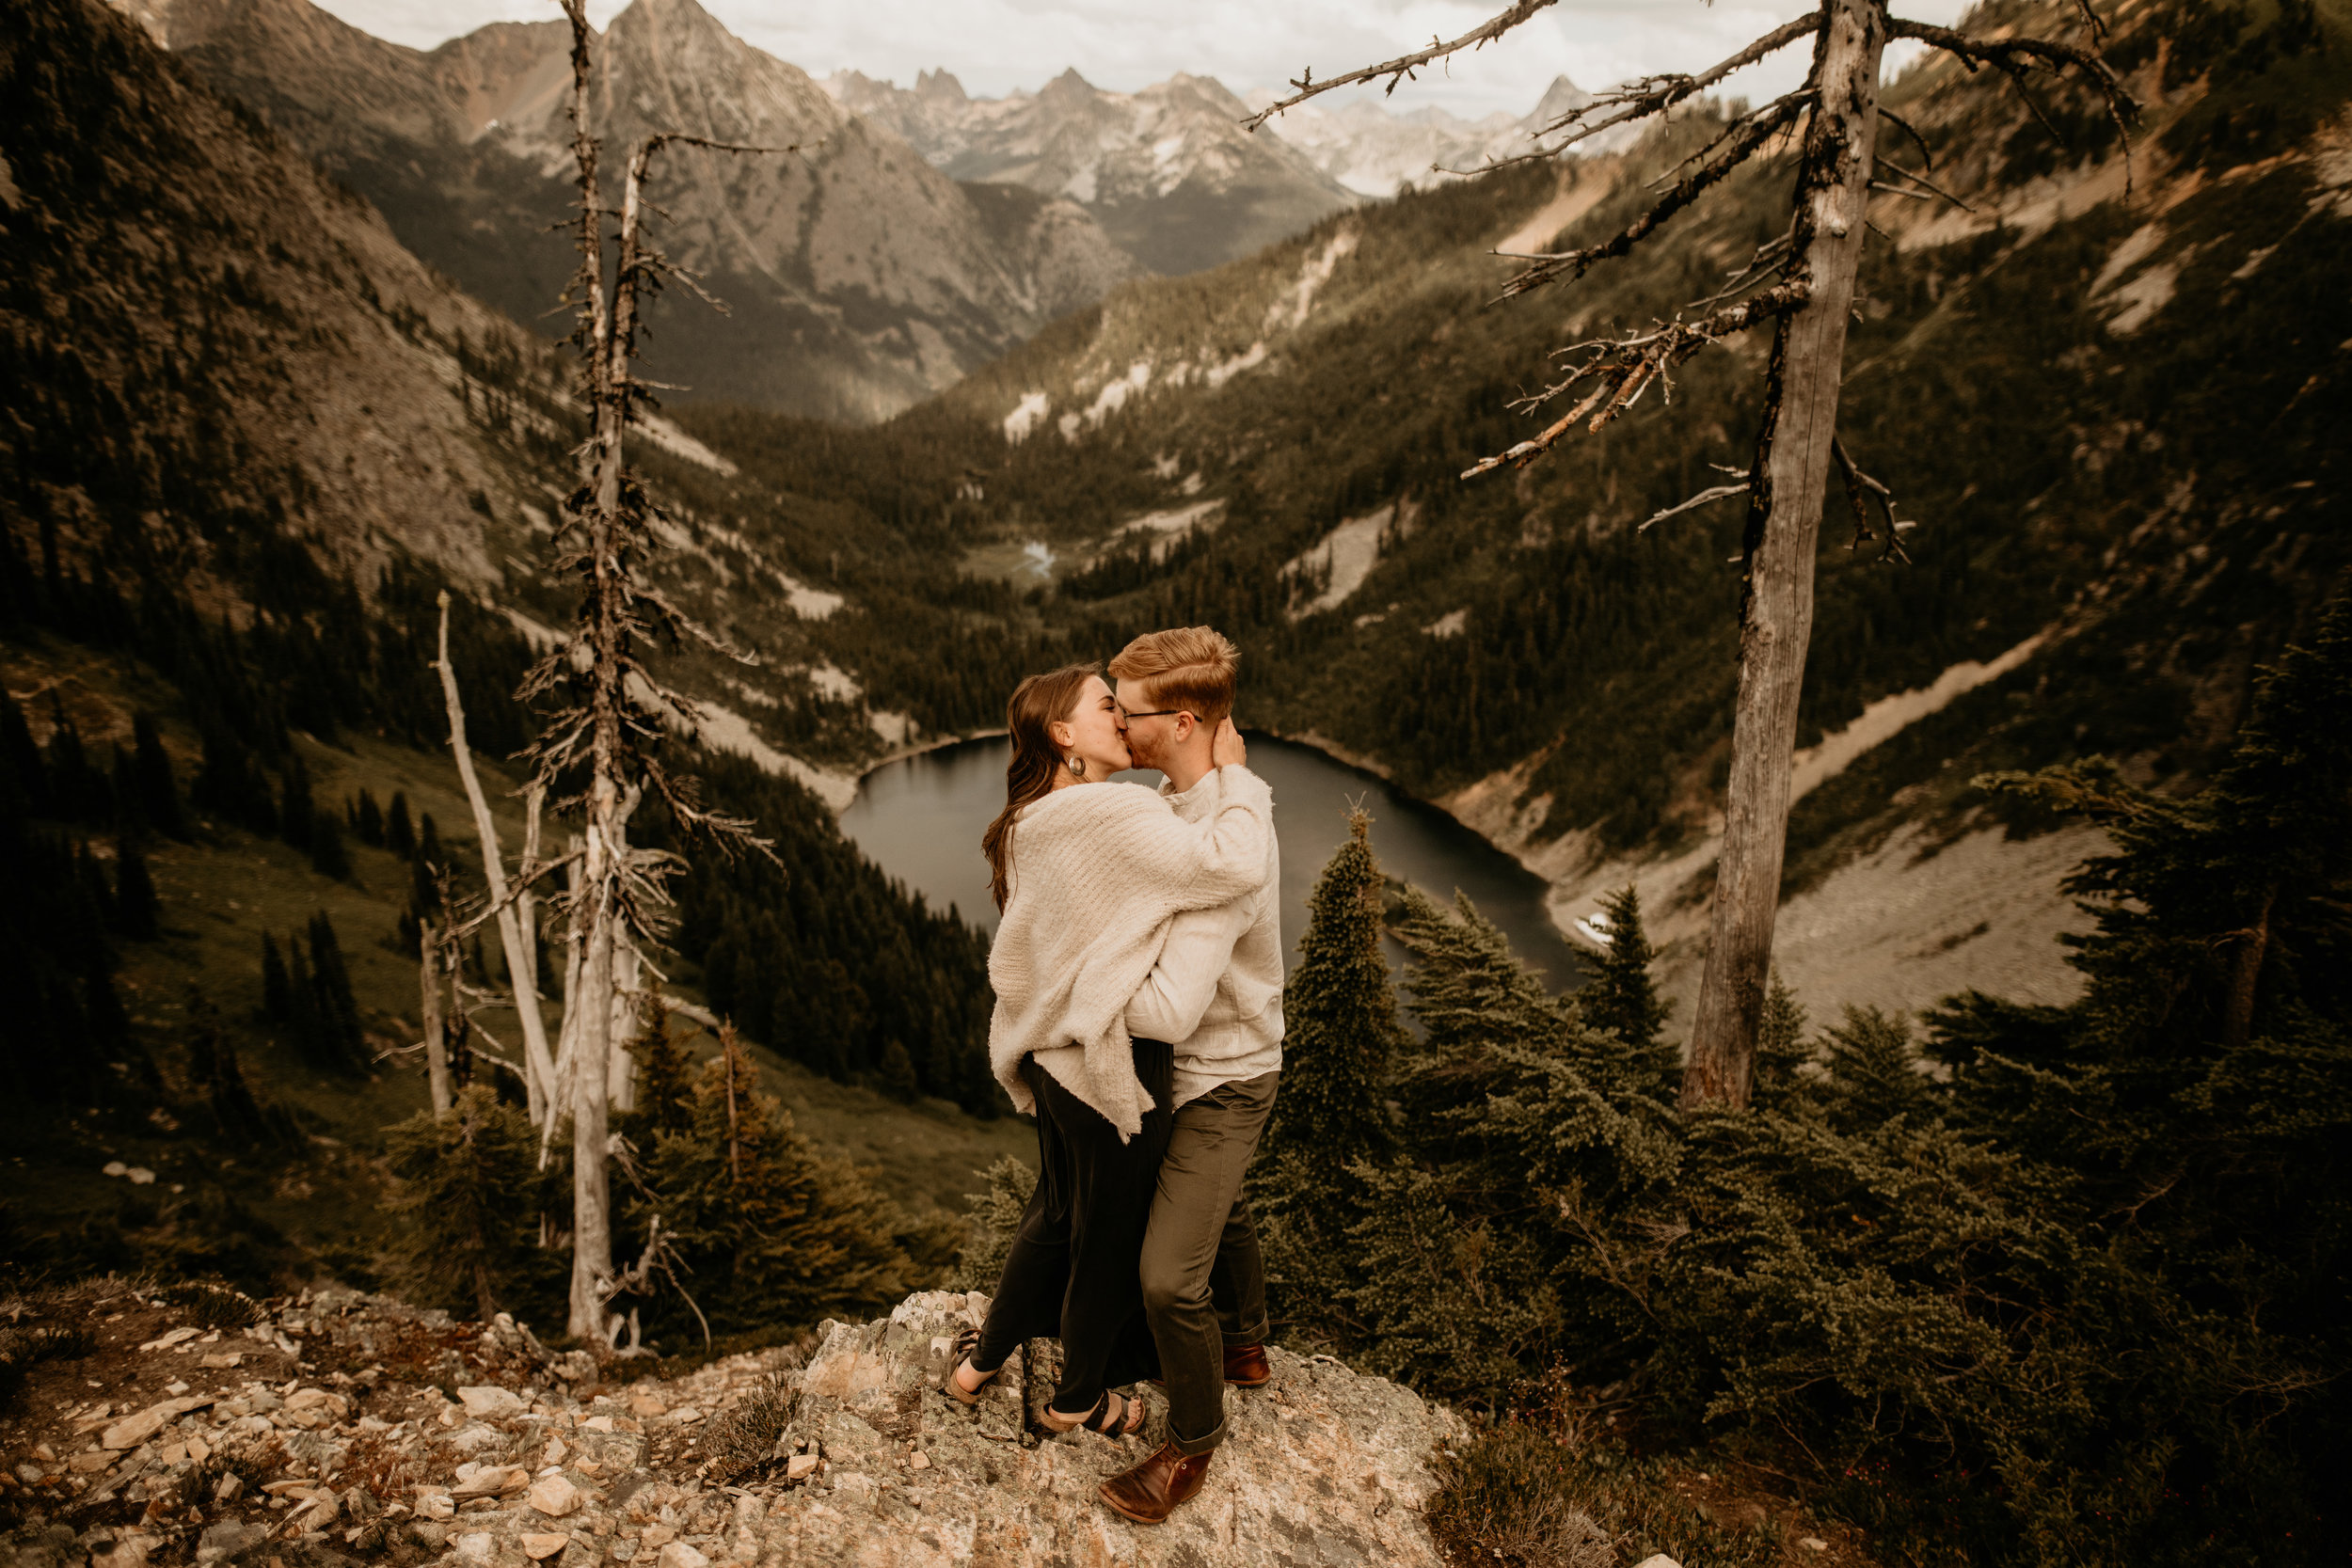 North cascades engagement session - heather maple pass loop engagement photos - north cascade national park engagement photos - mountain engagement photos - mt Baker national park engagement photos - wildflower engagement photos - summer engagement photos - Ann lake engagement photos